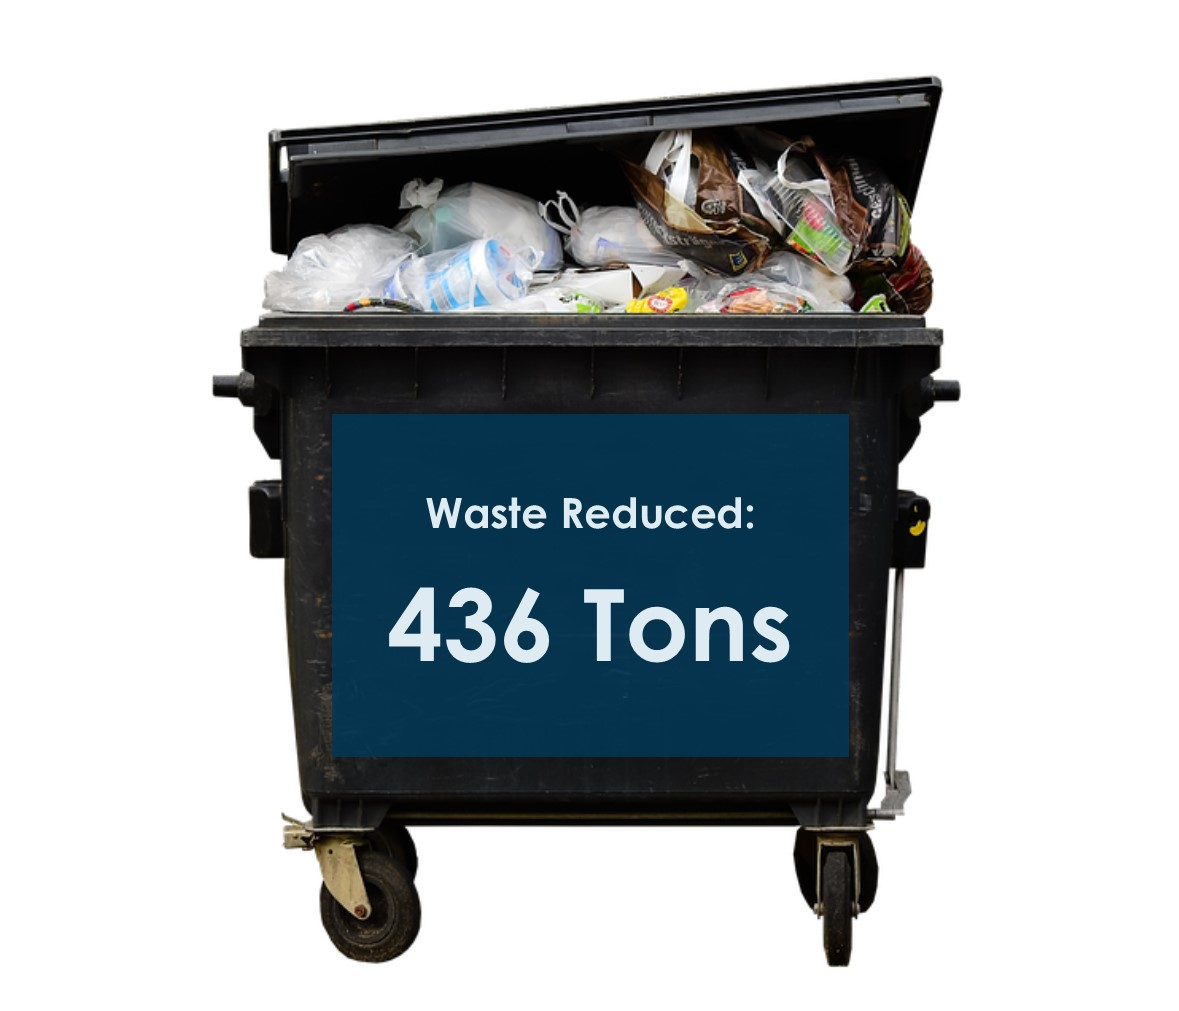 Waste Reduced